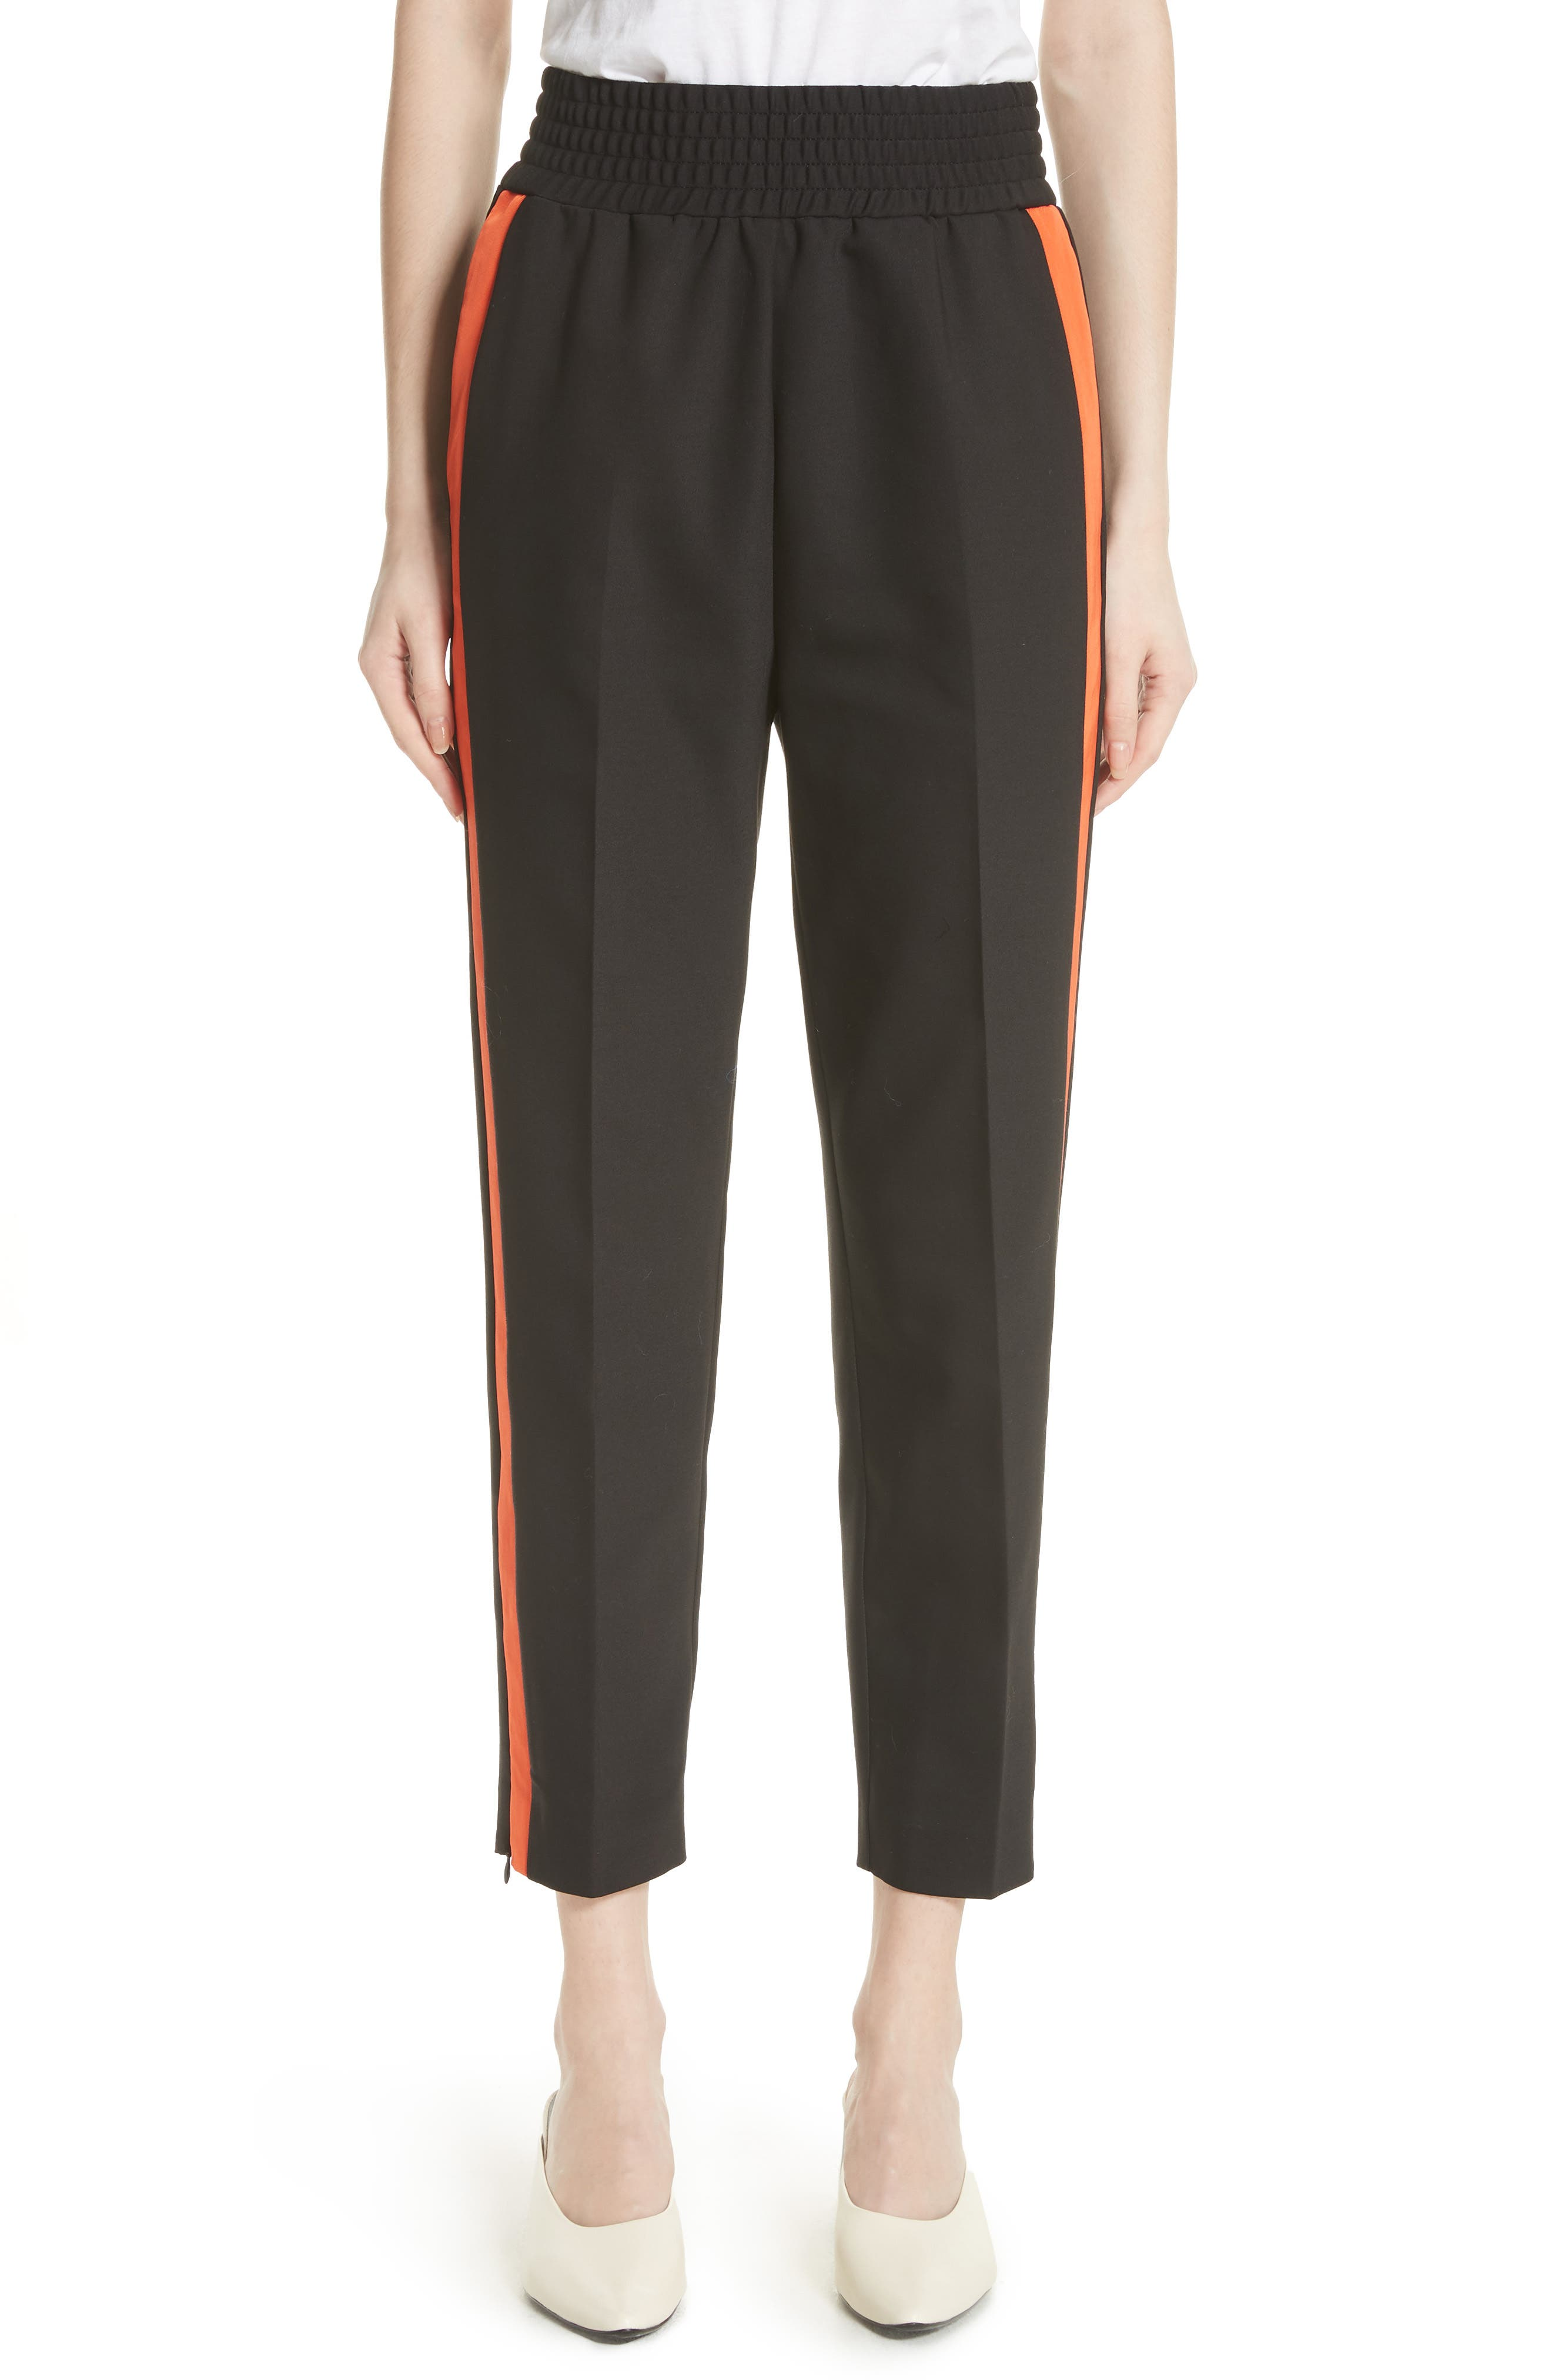 Pensee Track Pants,                         Main,                         color, Black 210